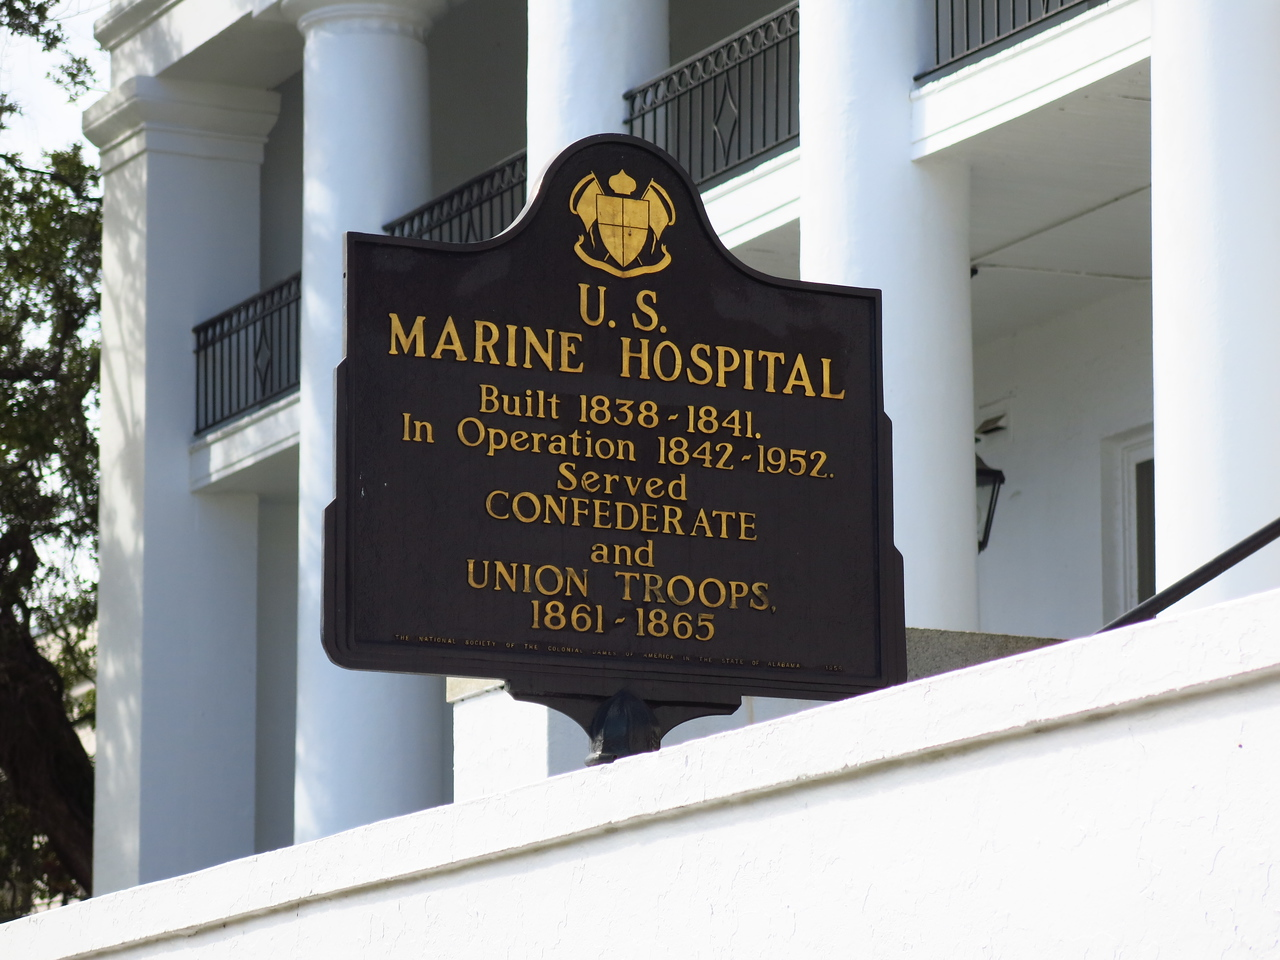 Sign in front of the U.S. Marine Hospital